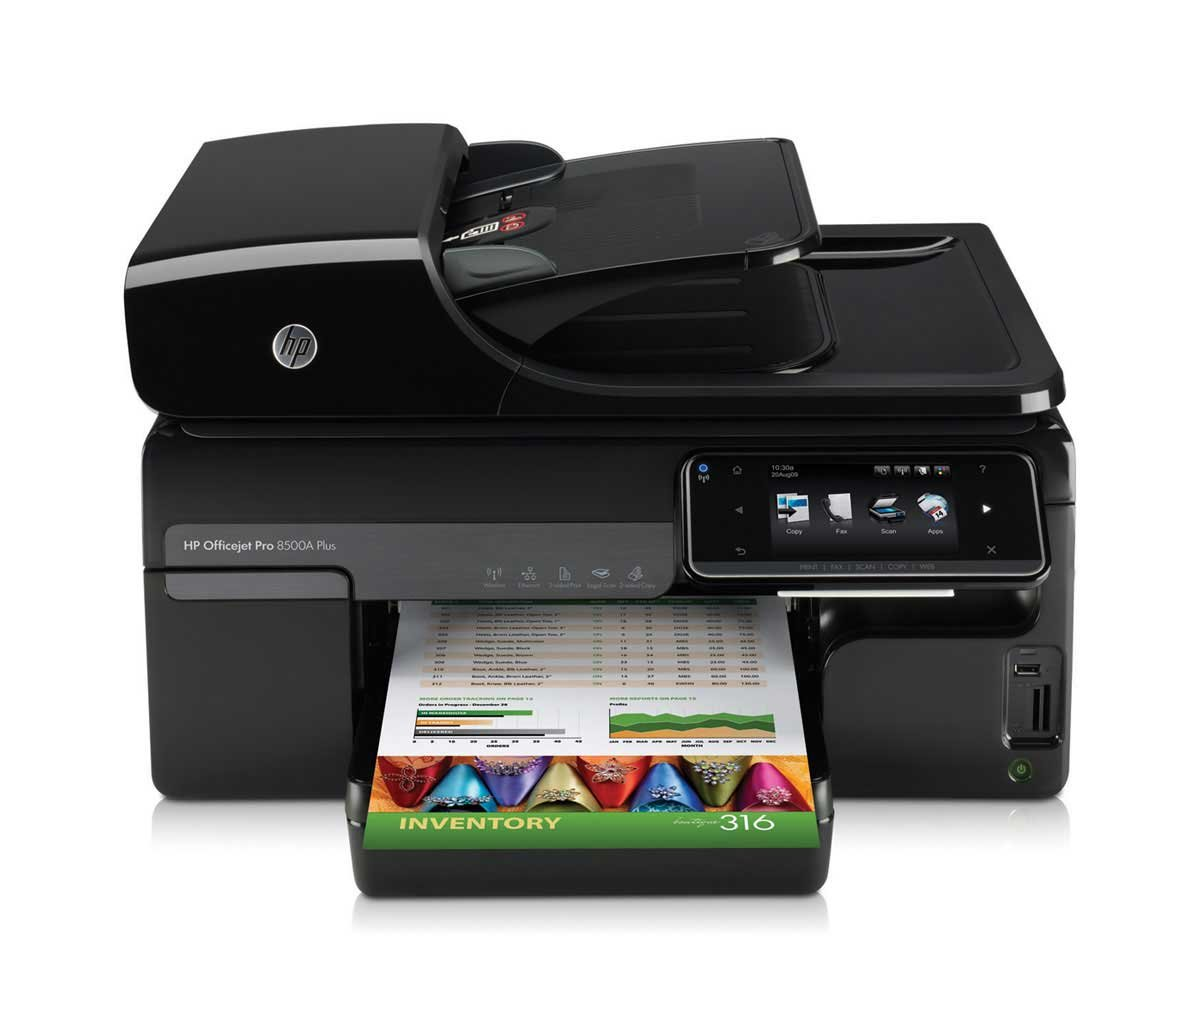 Amazon.com: HP Officejet Pro 8500A Plus Wireless e-All-in-One (CM756A#B1H):  Electronics